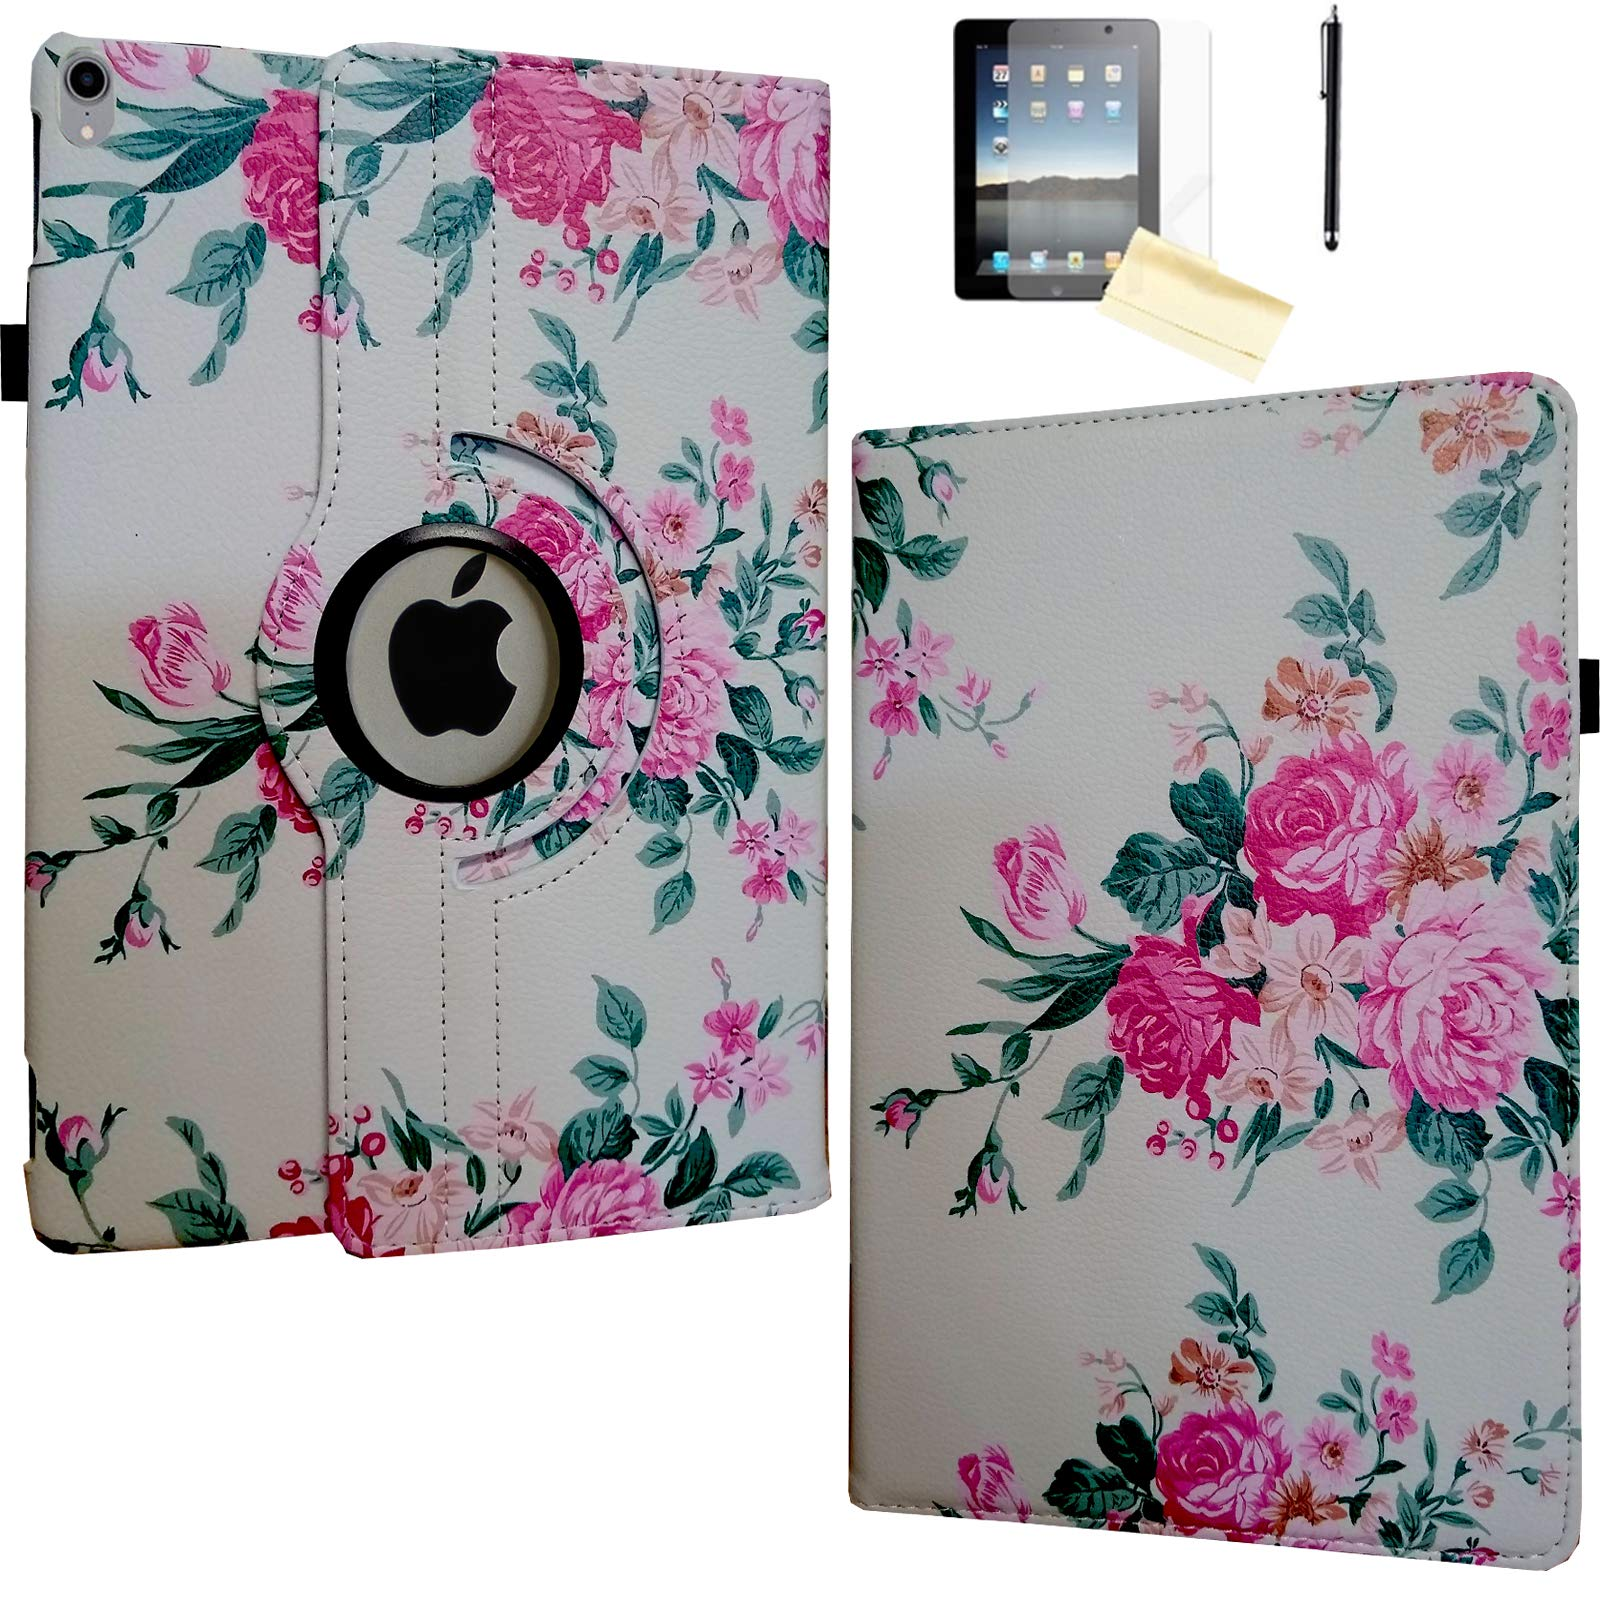 JYtrend Case for 10.5-inch iPad Air 3rd, Rotating Stand Smart Magnetic Auto Wake Up/Sleep Cover for 2019 iPad Air 3 - A2152 A2153 A2154 A2123 MUUQ2LL/A MV172LL/A MV0Q2B/A MV0V2CH/A (Rose Flower)